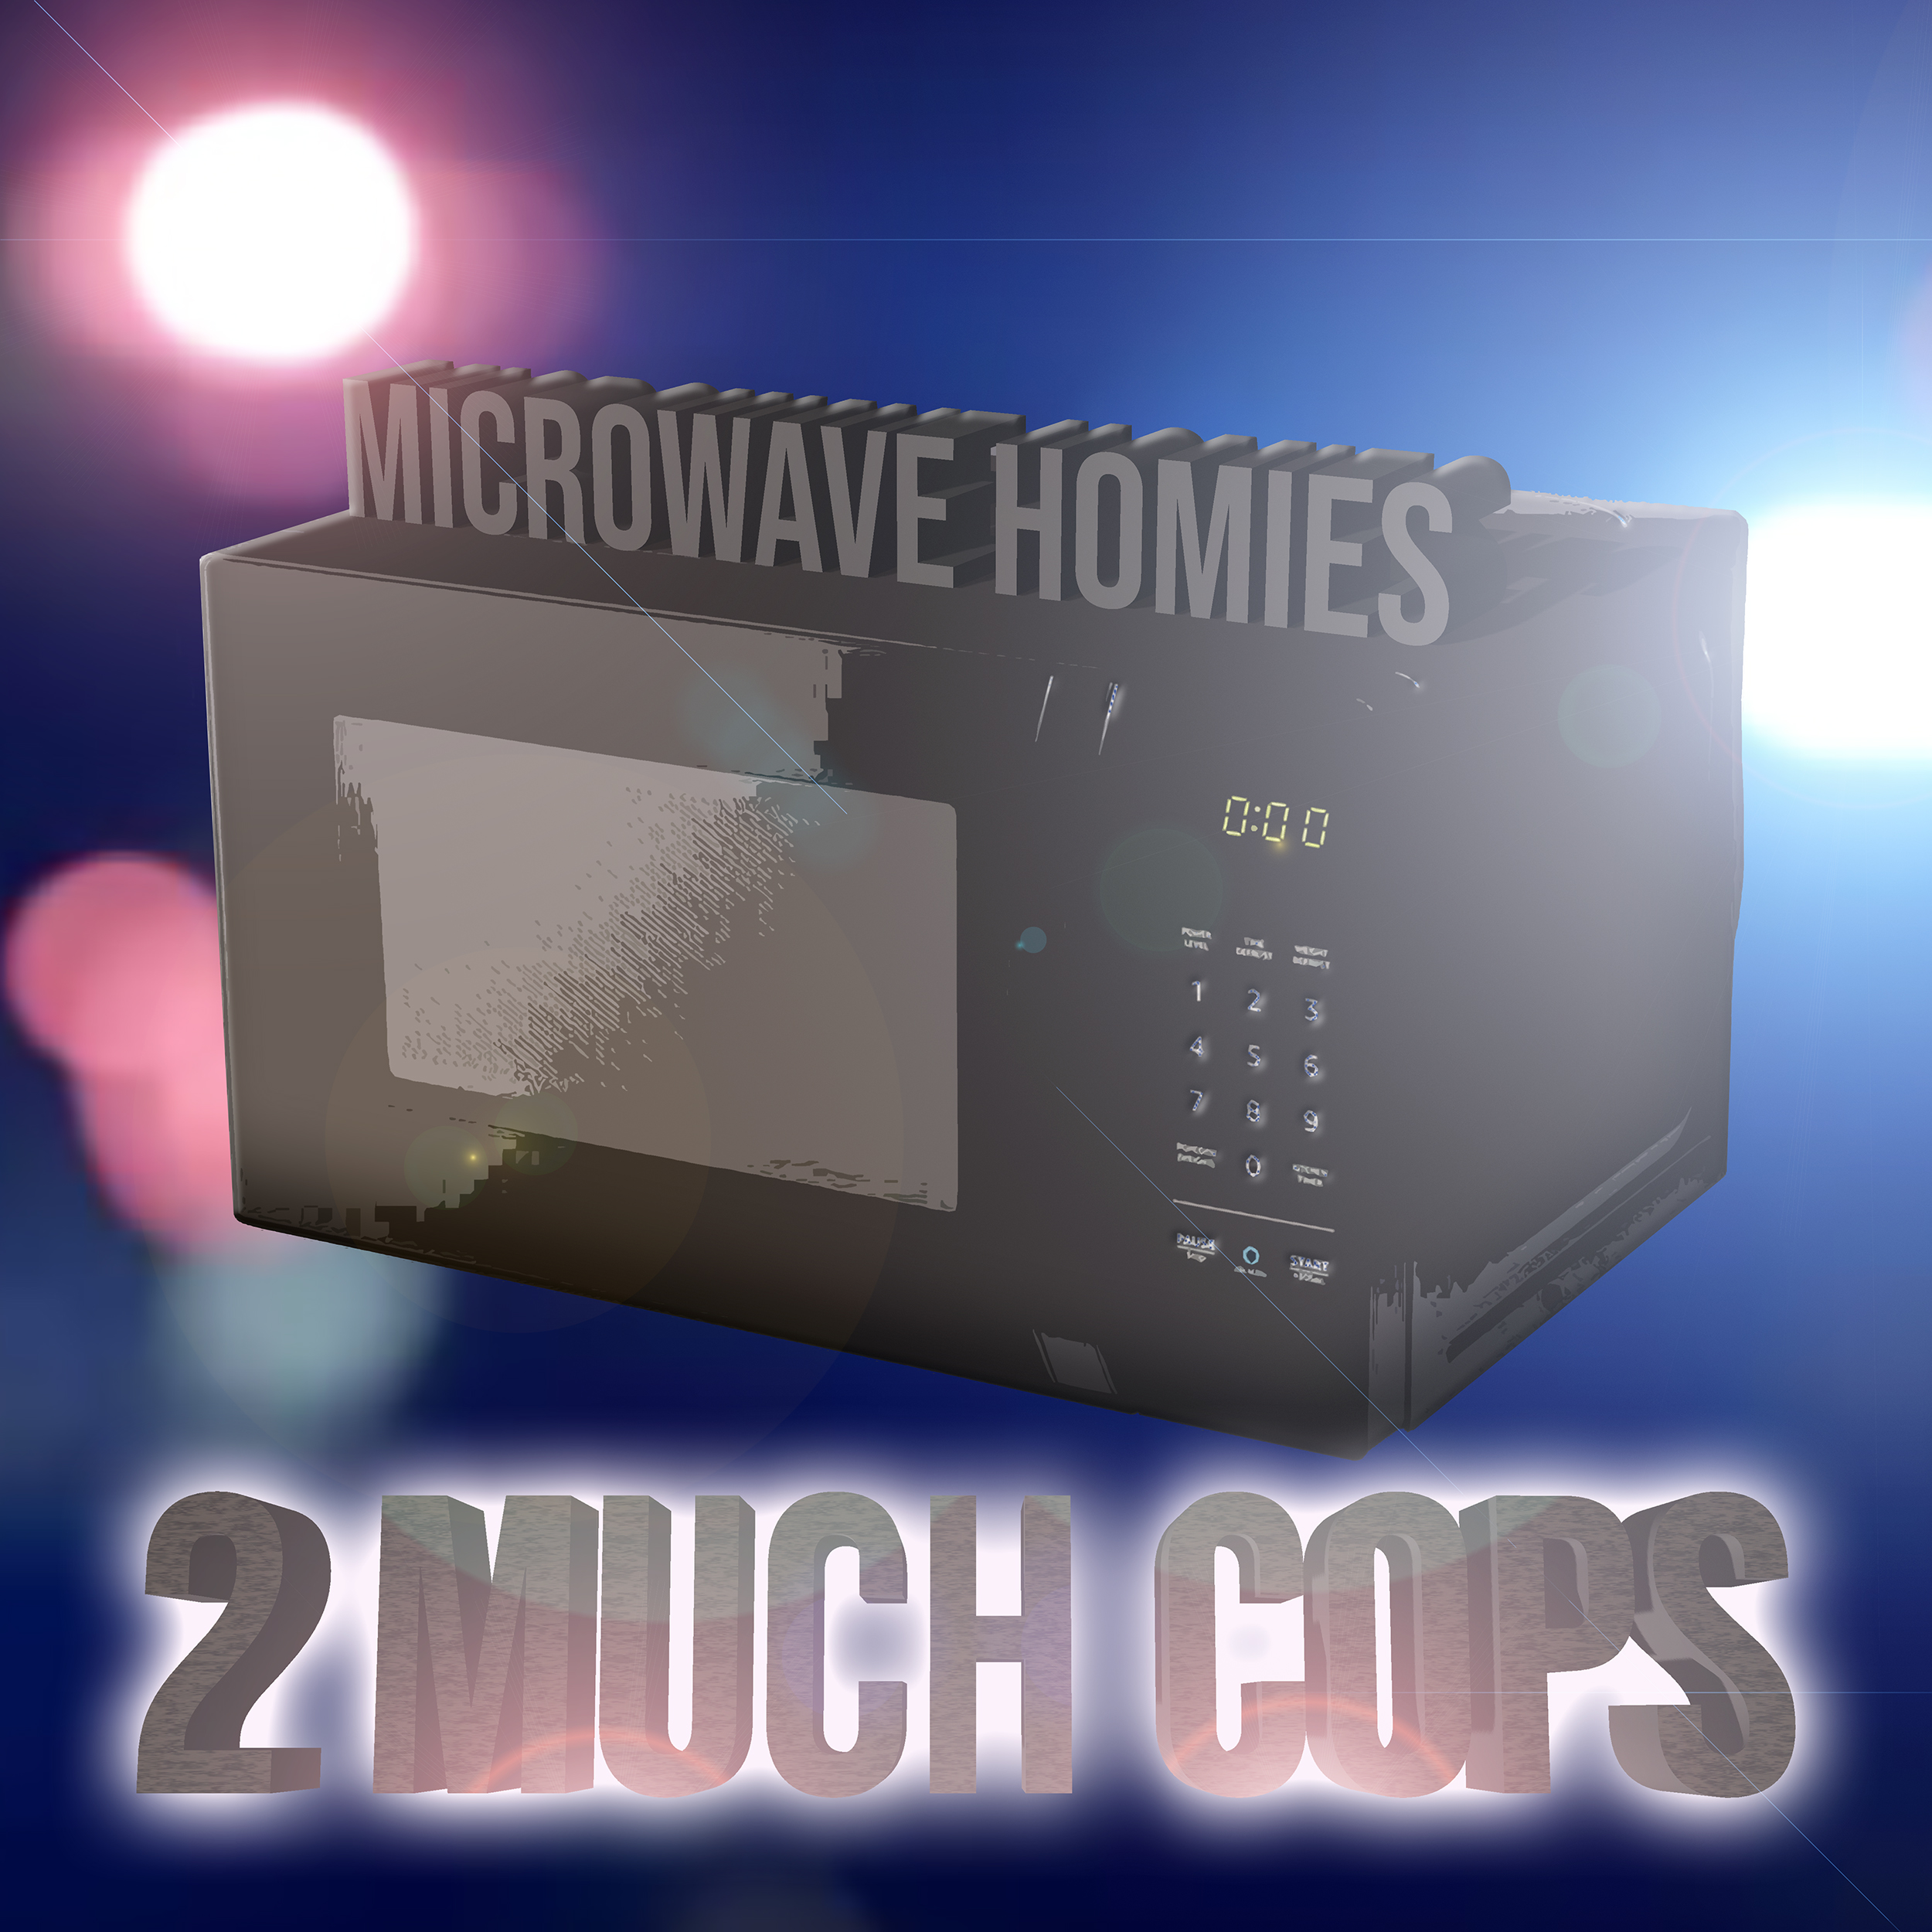 sometimes you got 2 much cops you don't need - click here to listen to the newest record